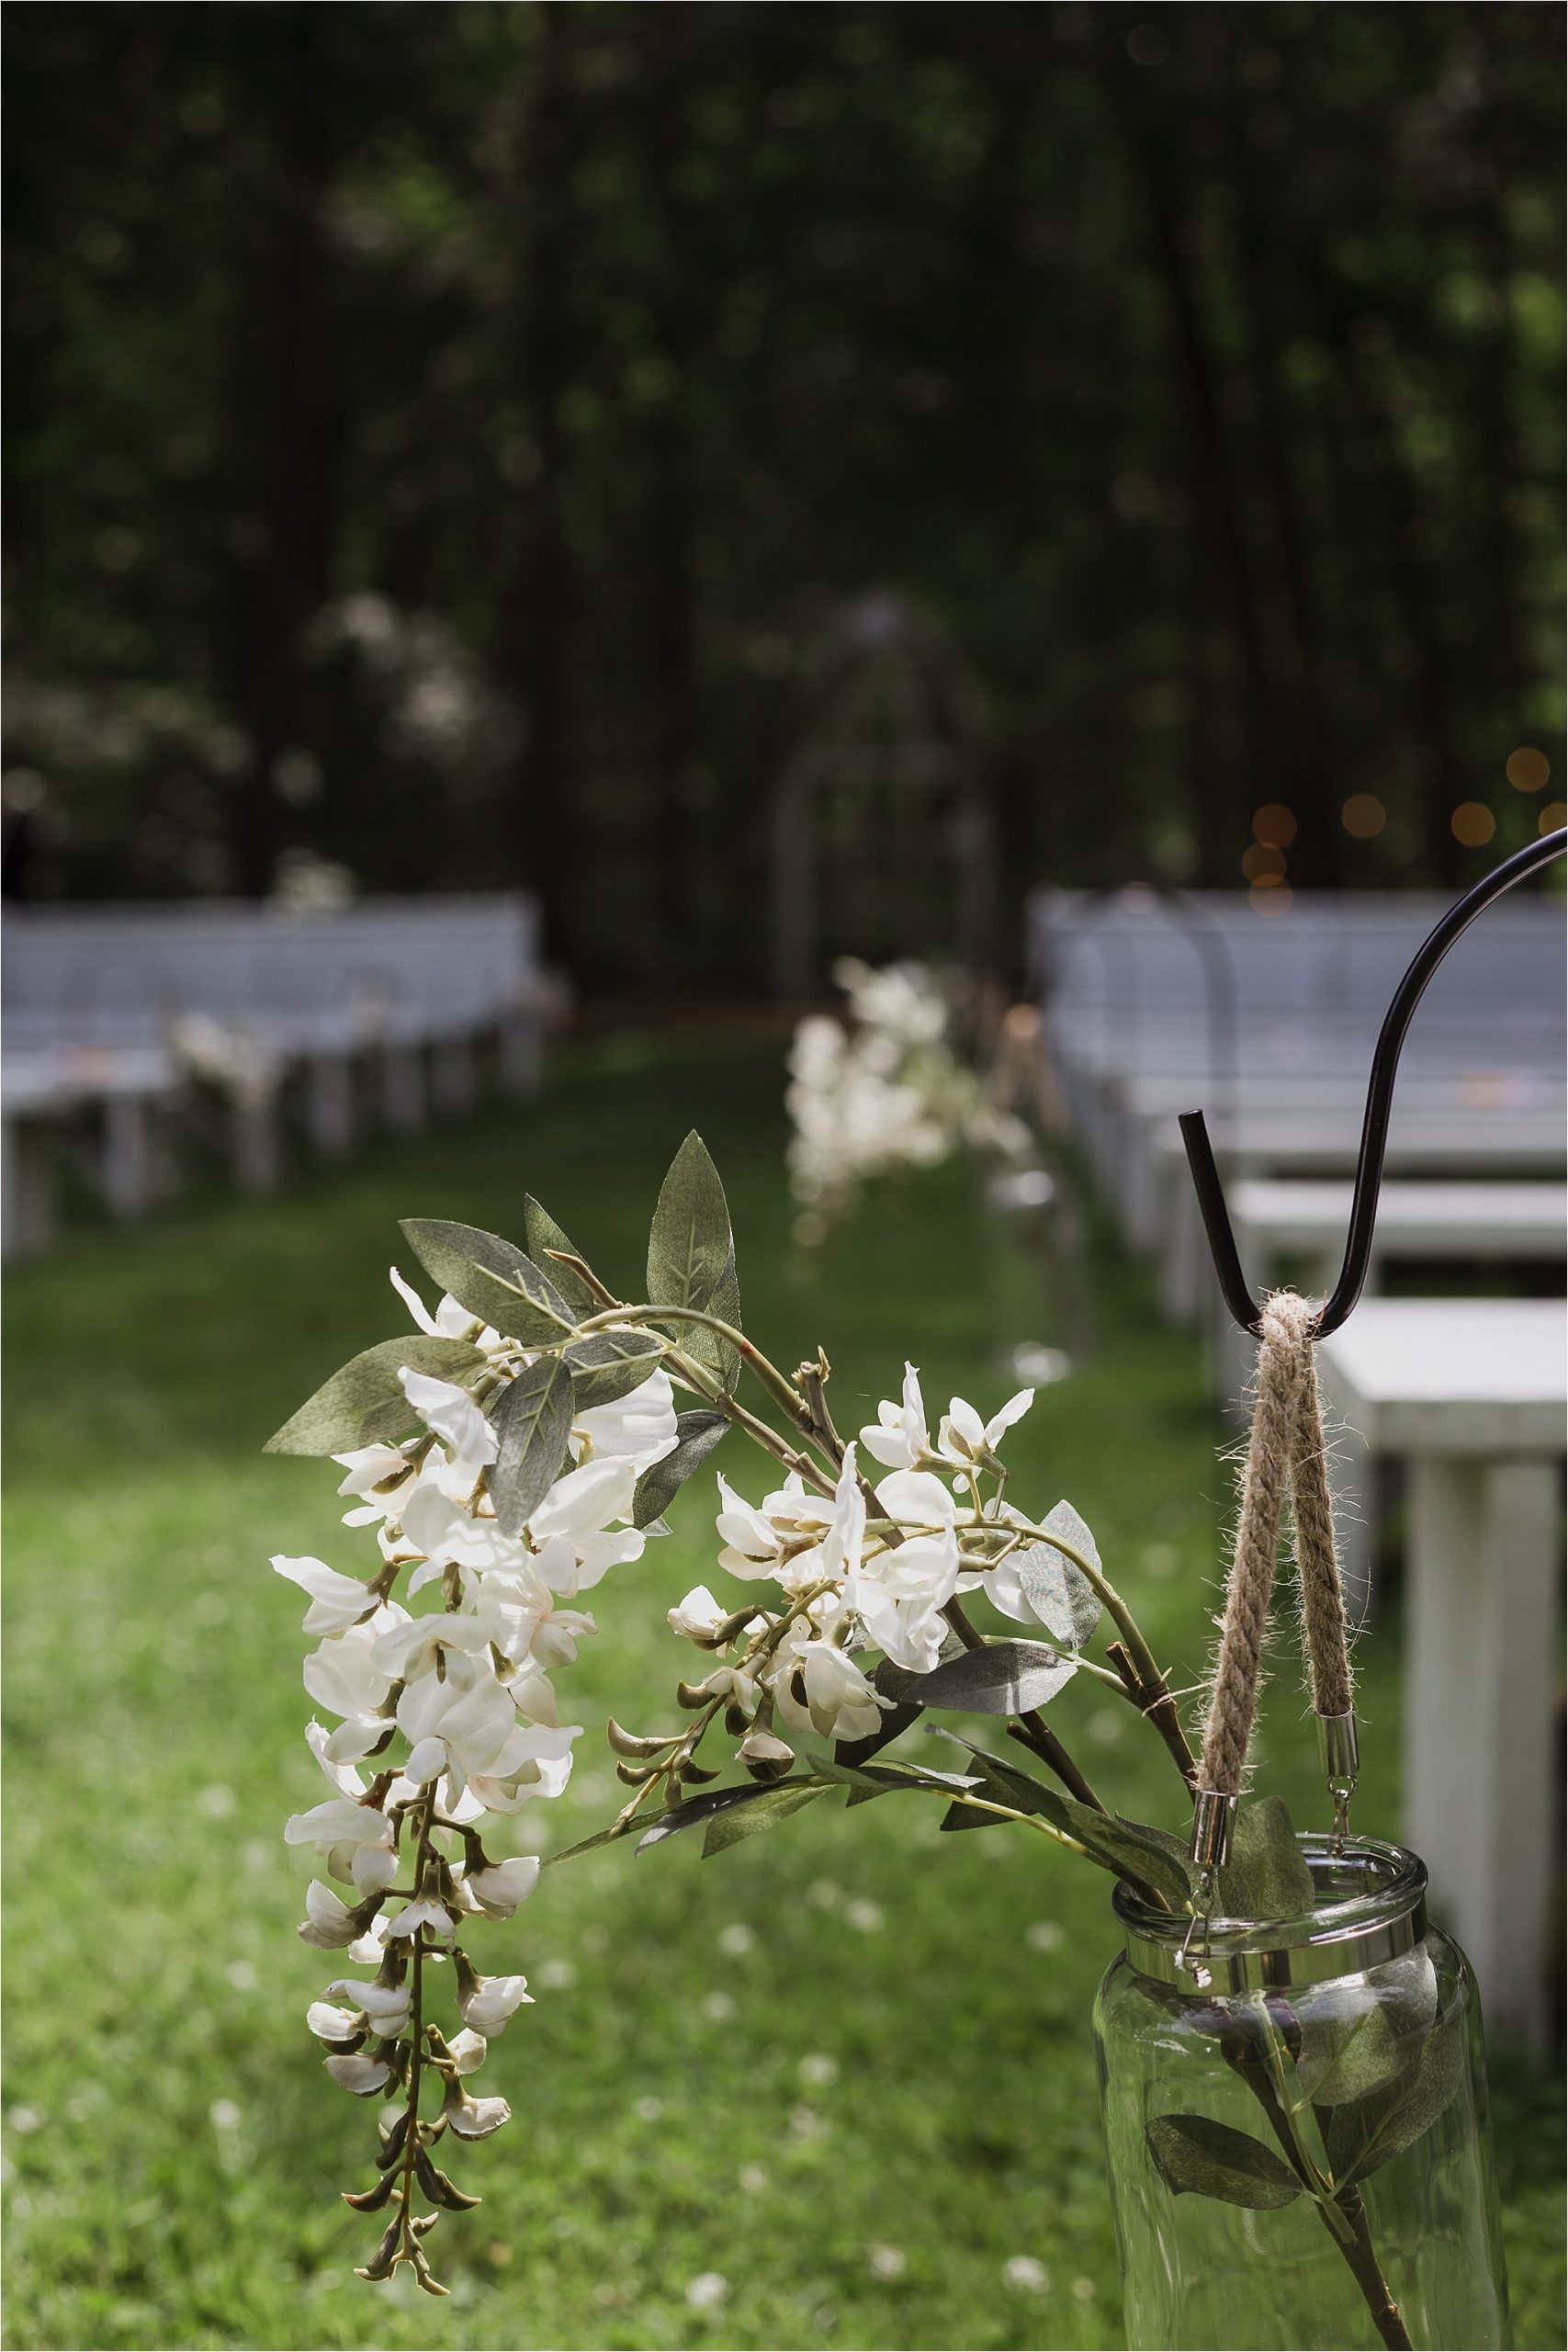 The Clearing wedding venue ceremony decoration with benches and floral mason jar arrangements